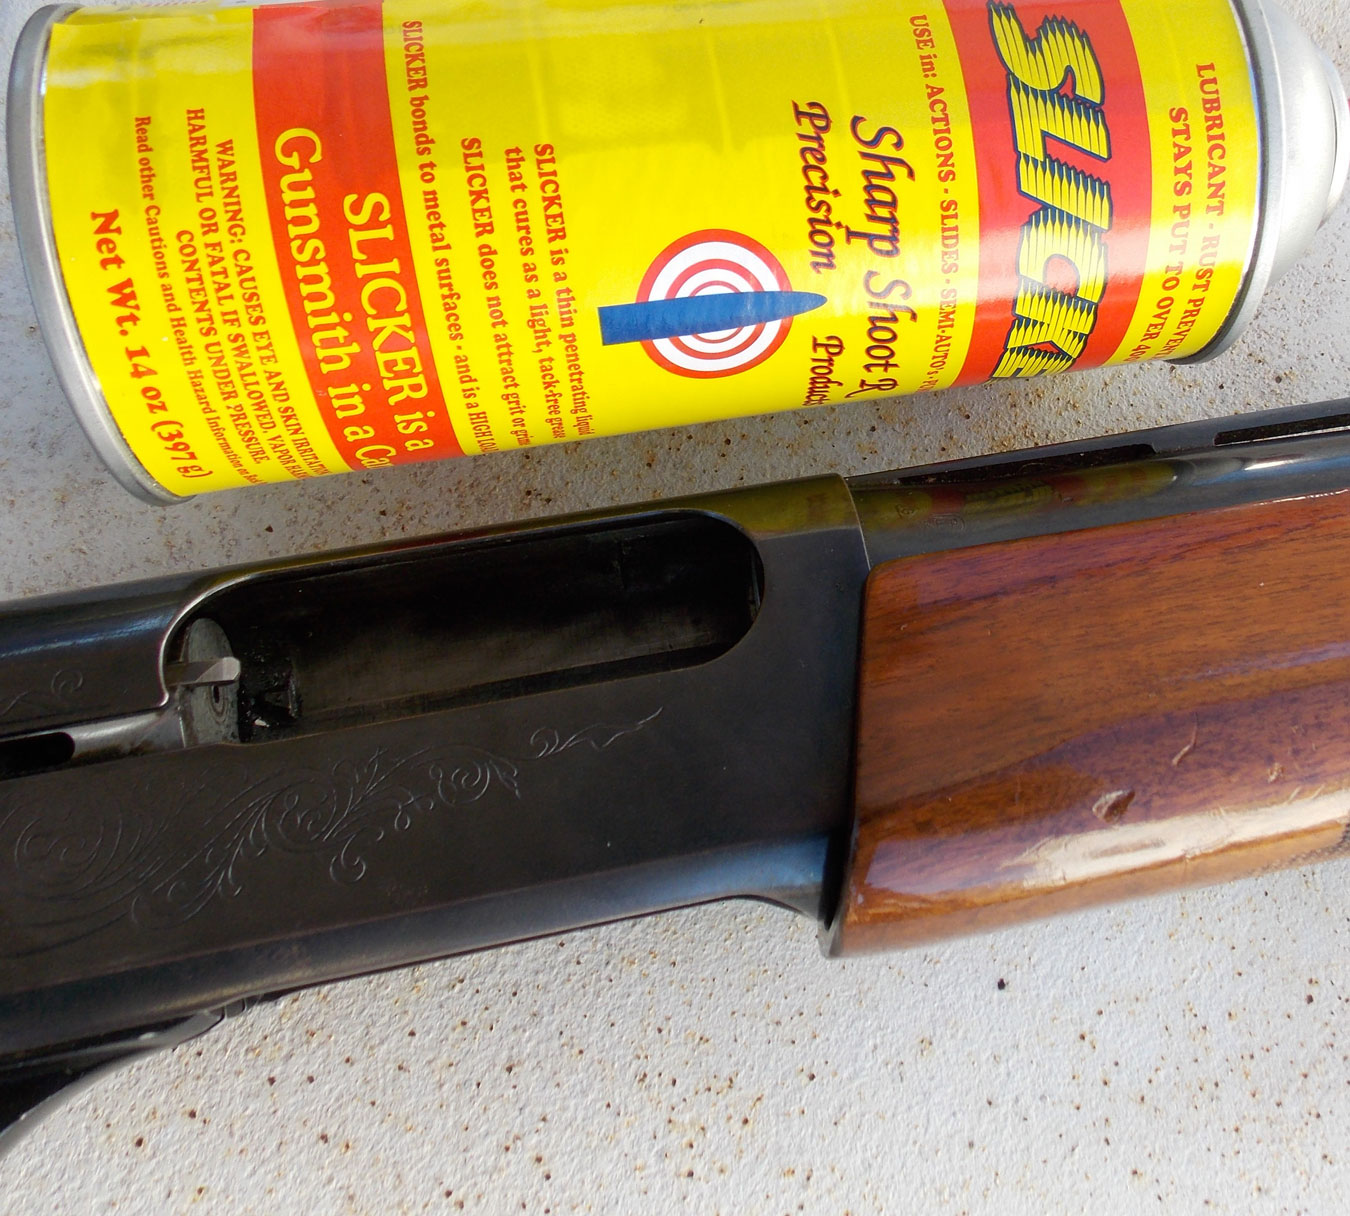 Remington 1100 shotgun and a can of spray lubricant